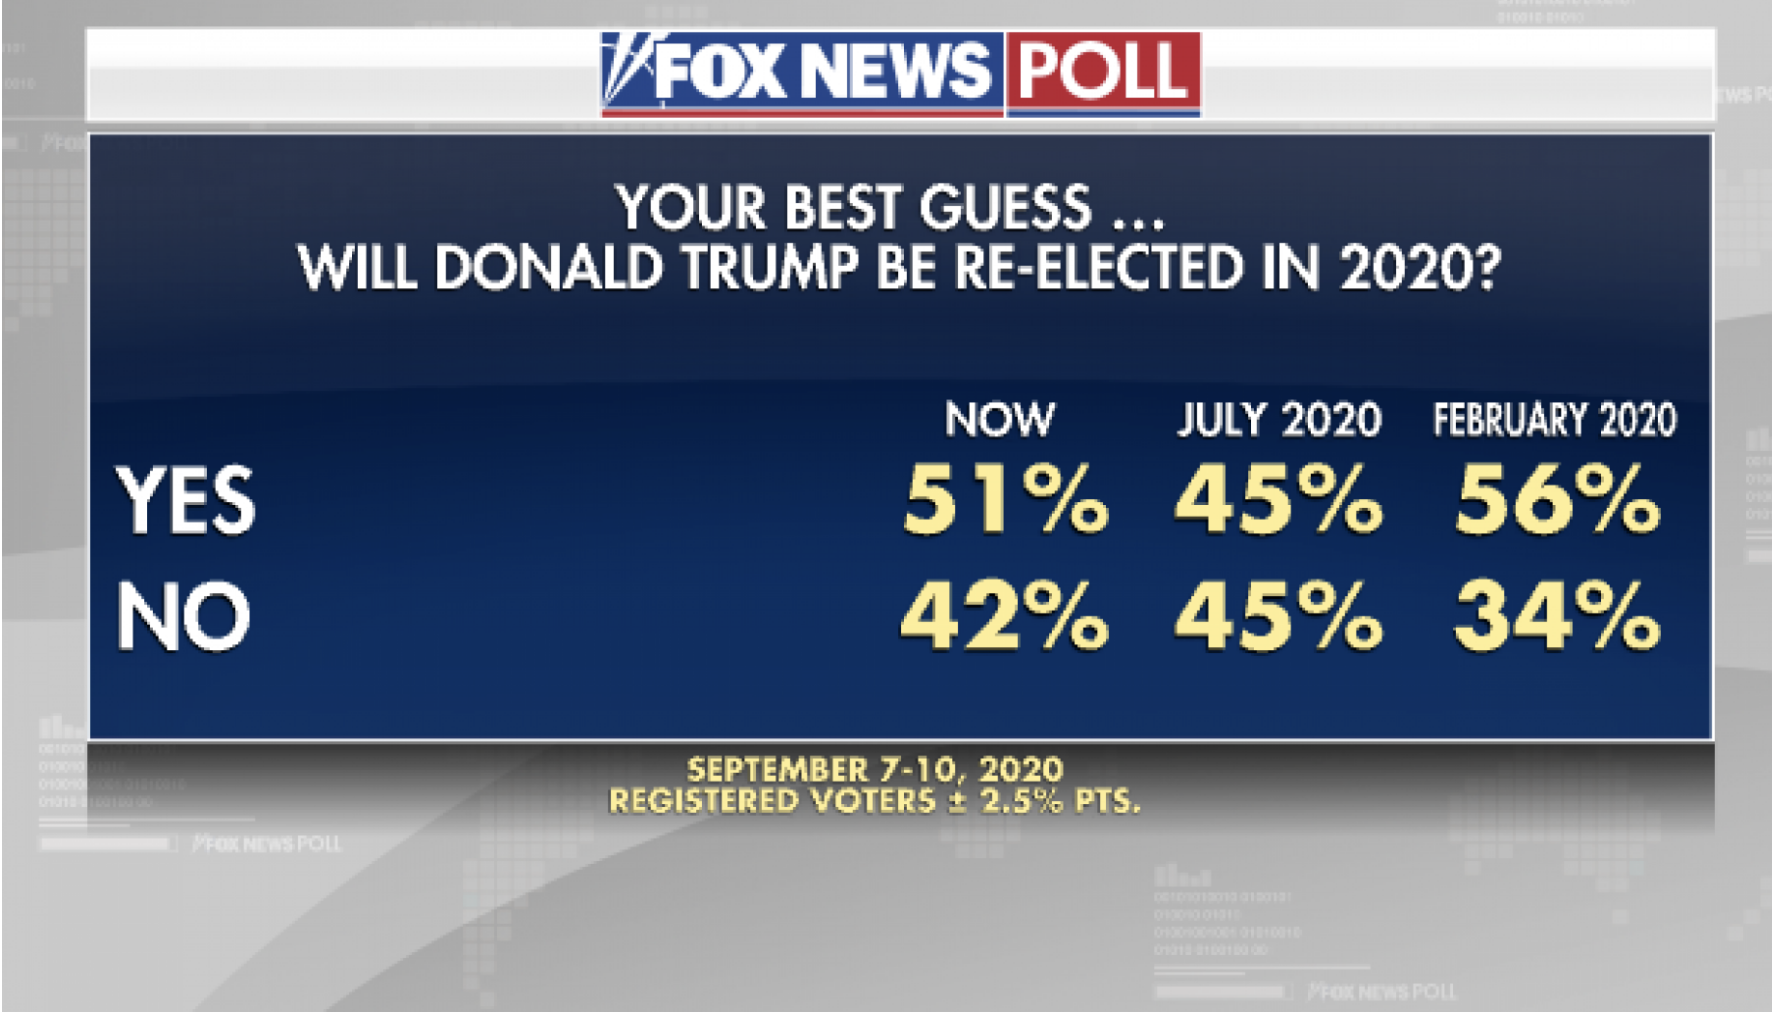 Screen-Shot-2020-09-13-at-12.57.51-PM 7-Different 2020 Polls Released Show Decisive Joe Biden Sweep Election 2020 Featured Politics Polls Top Stories